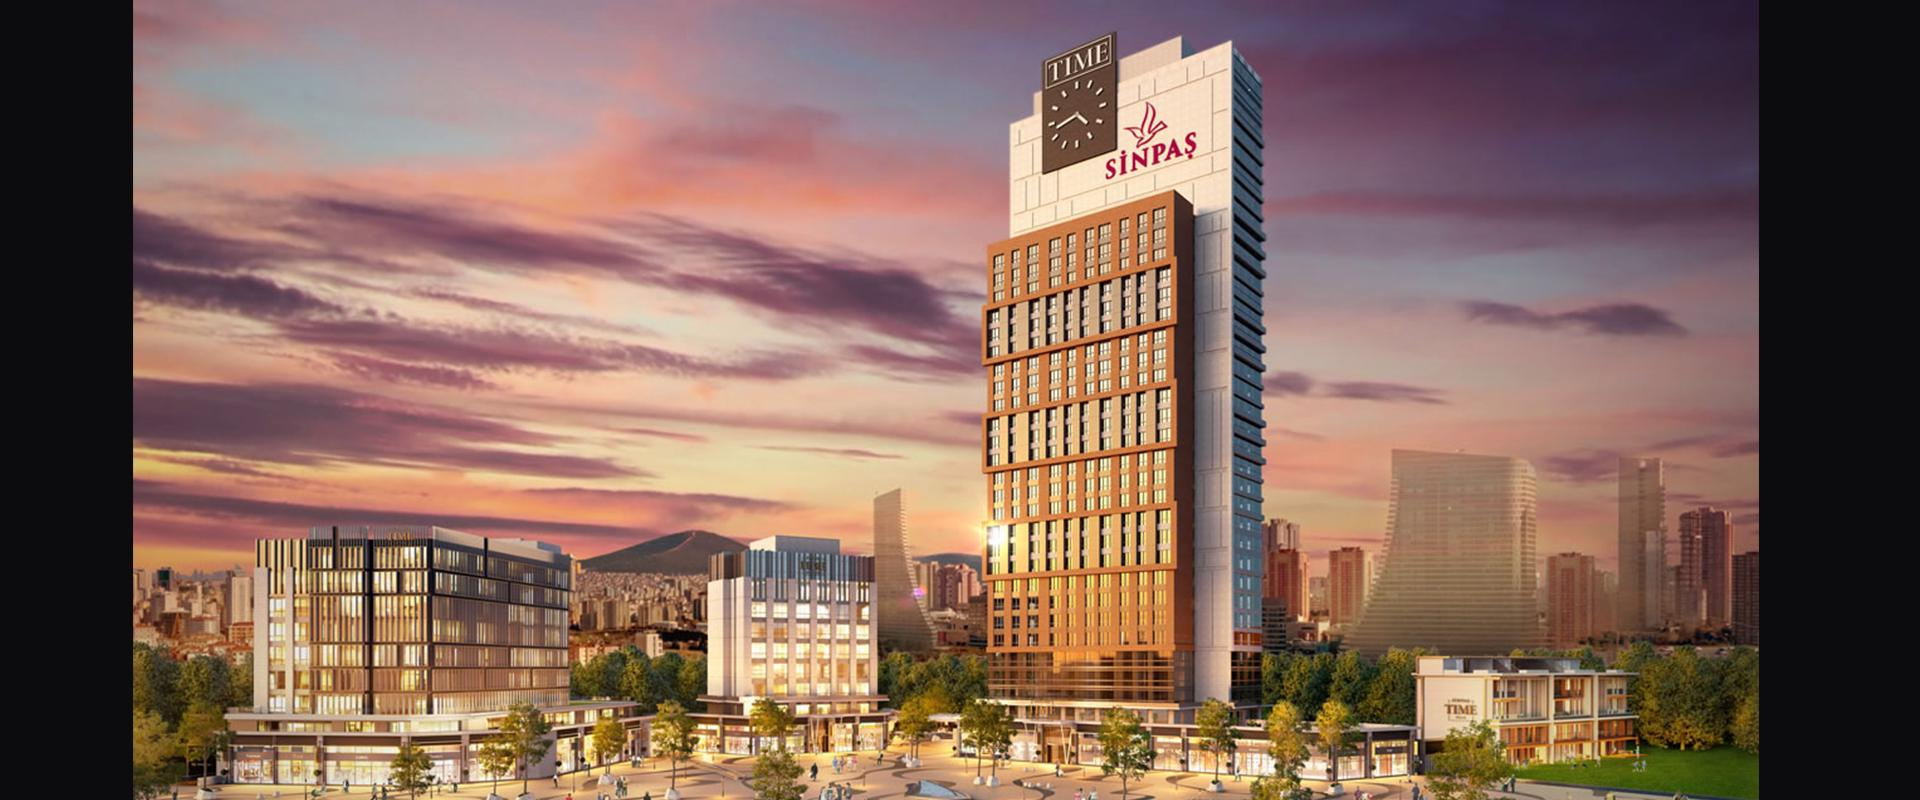 SINPAS FINANS SEHIR PROJECT TIME STAGE | Aslı Architecture